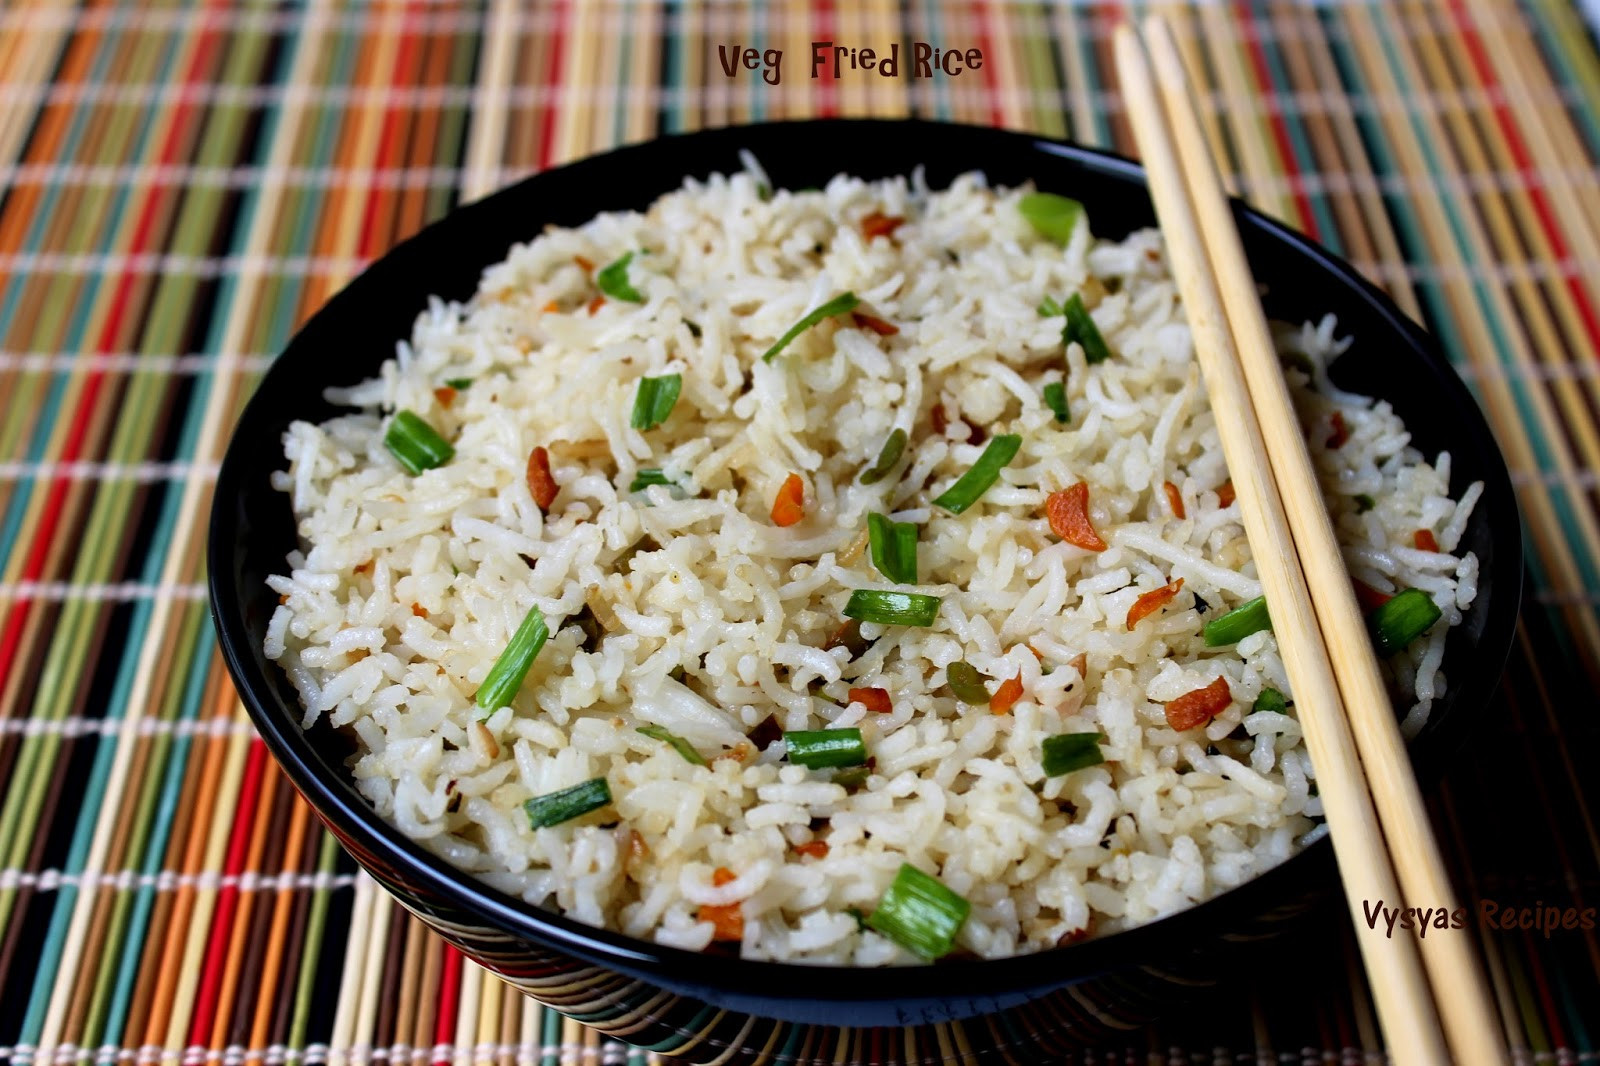 Veg Fried Rice  Vysya s Delicious Recipes Veg Fried Rice Easy Fried